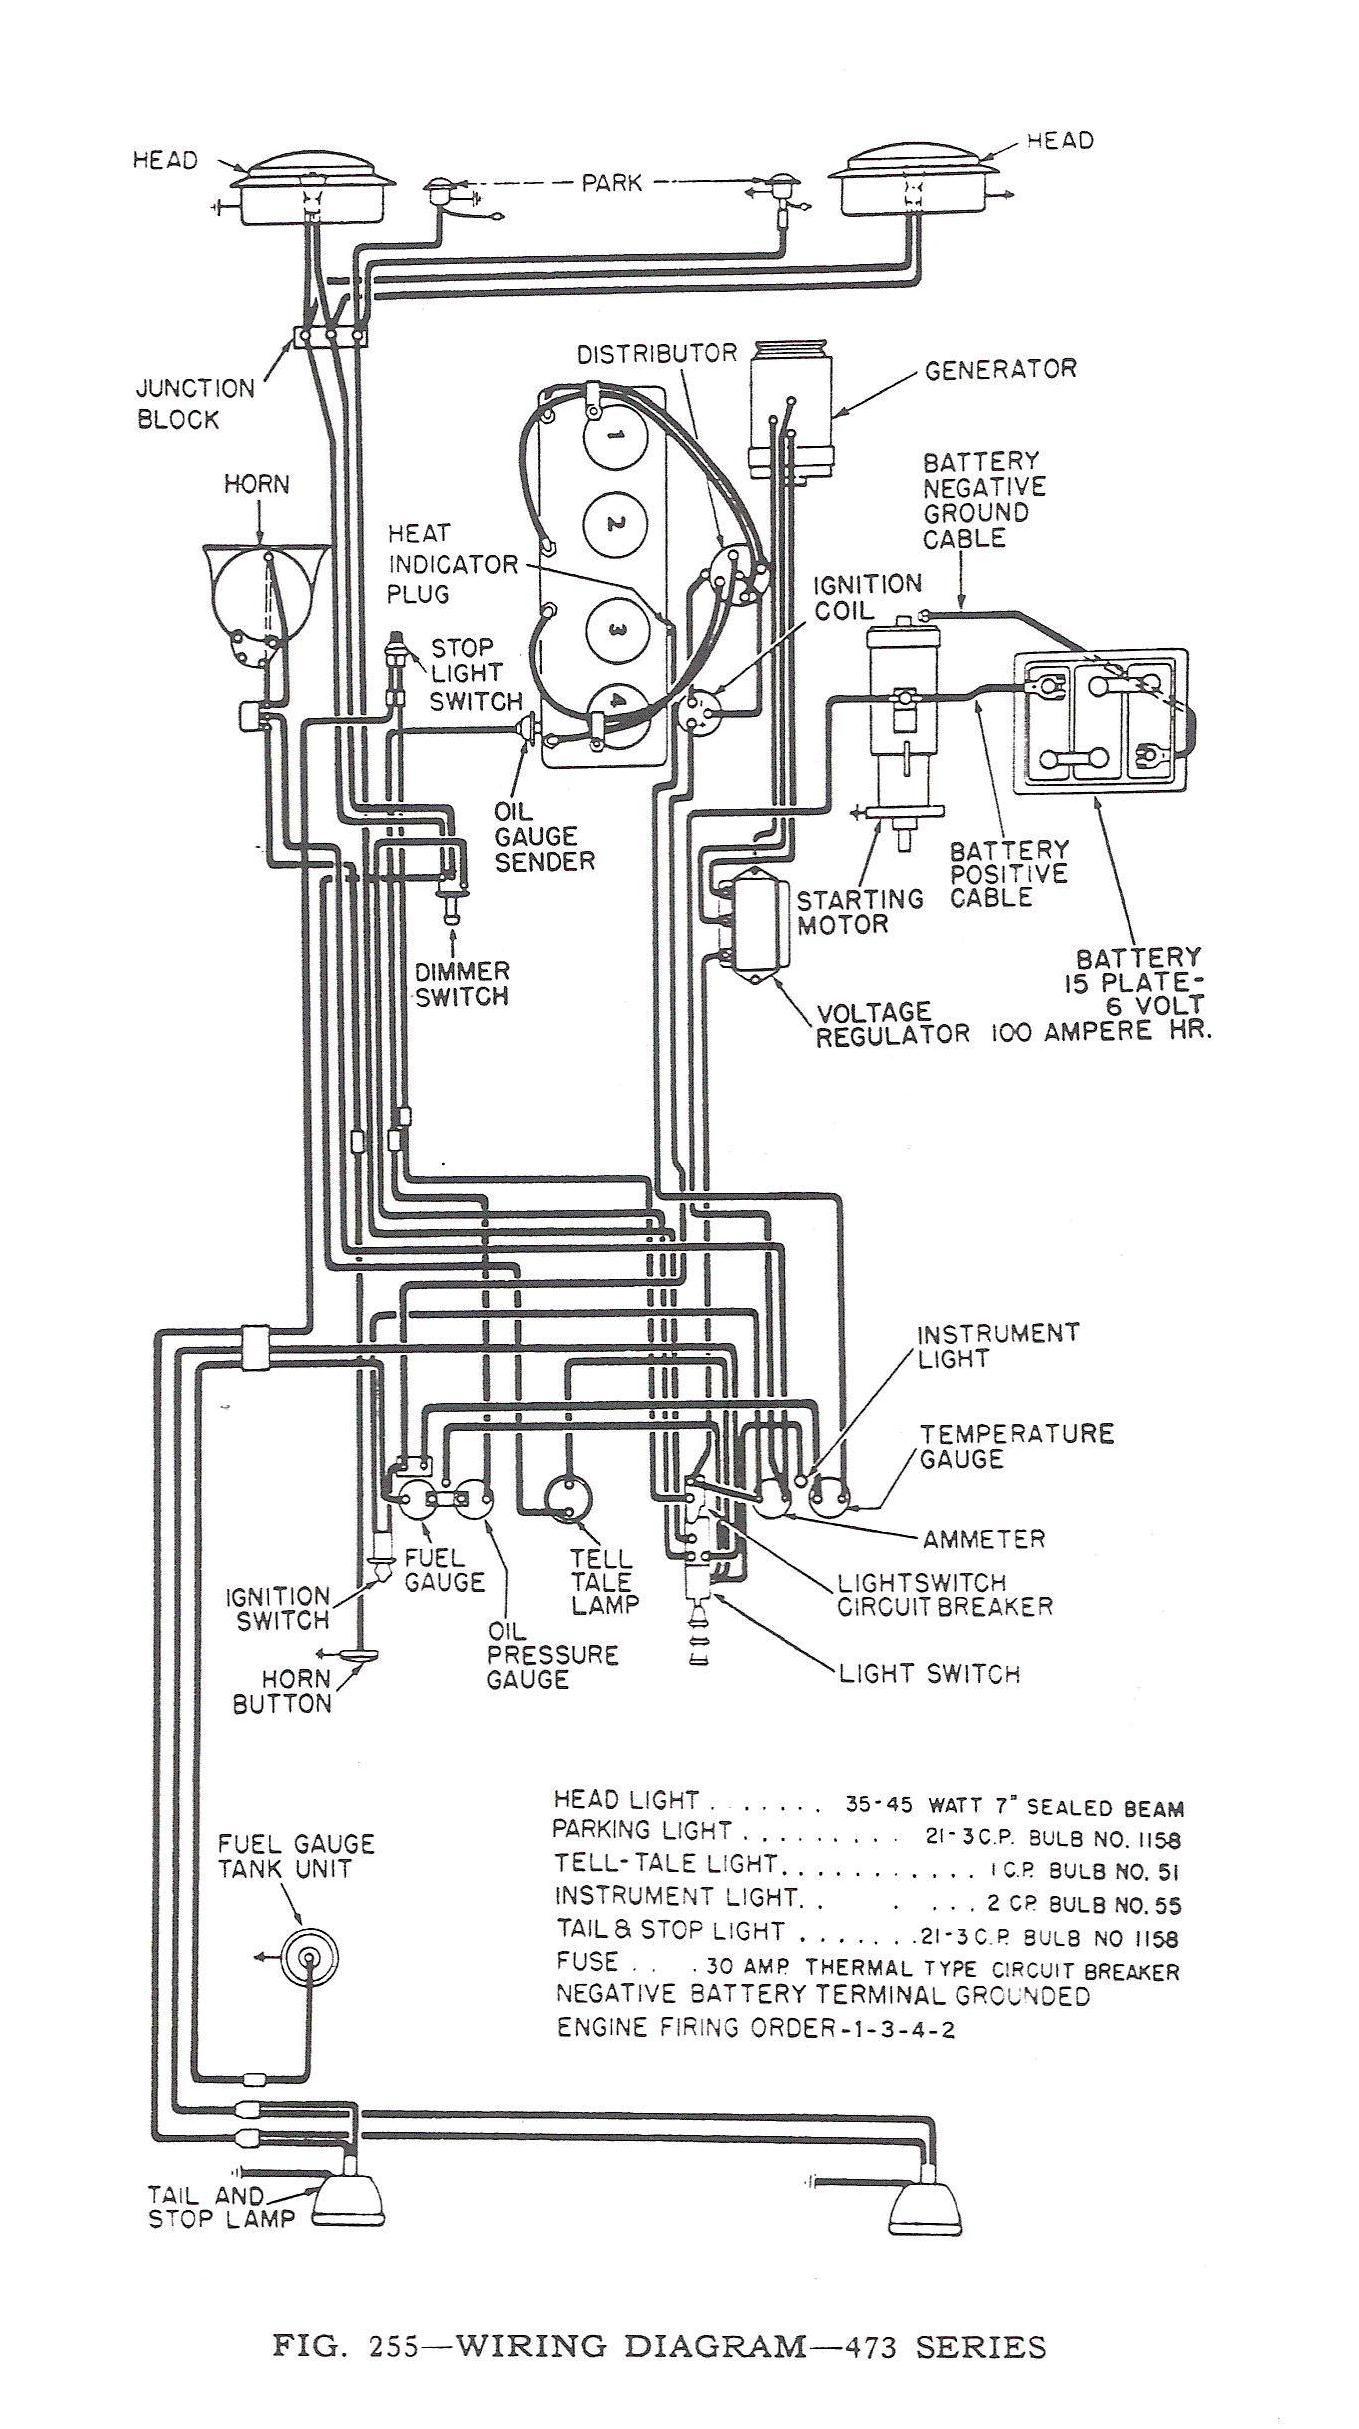 kaiser jeep wiring wiring diagram todays m151a1 wiring diagram kaiser jeep wiring diagram [ 1359 x 2429 Pixel ]